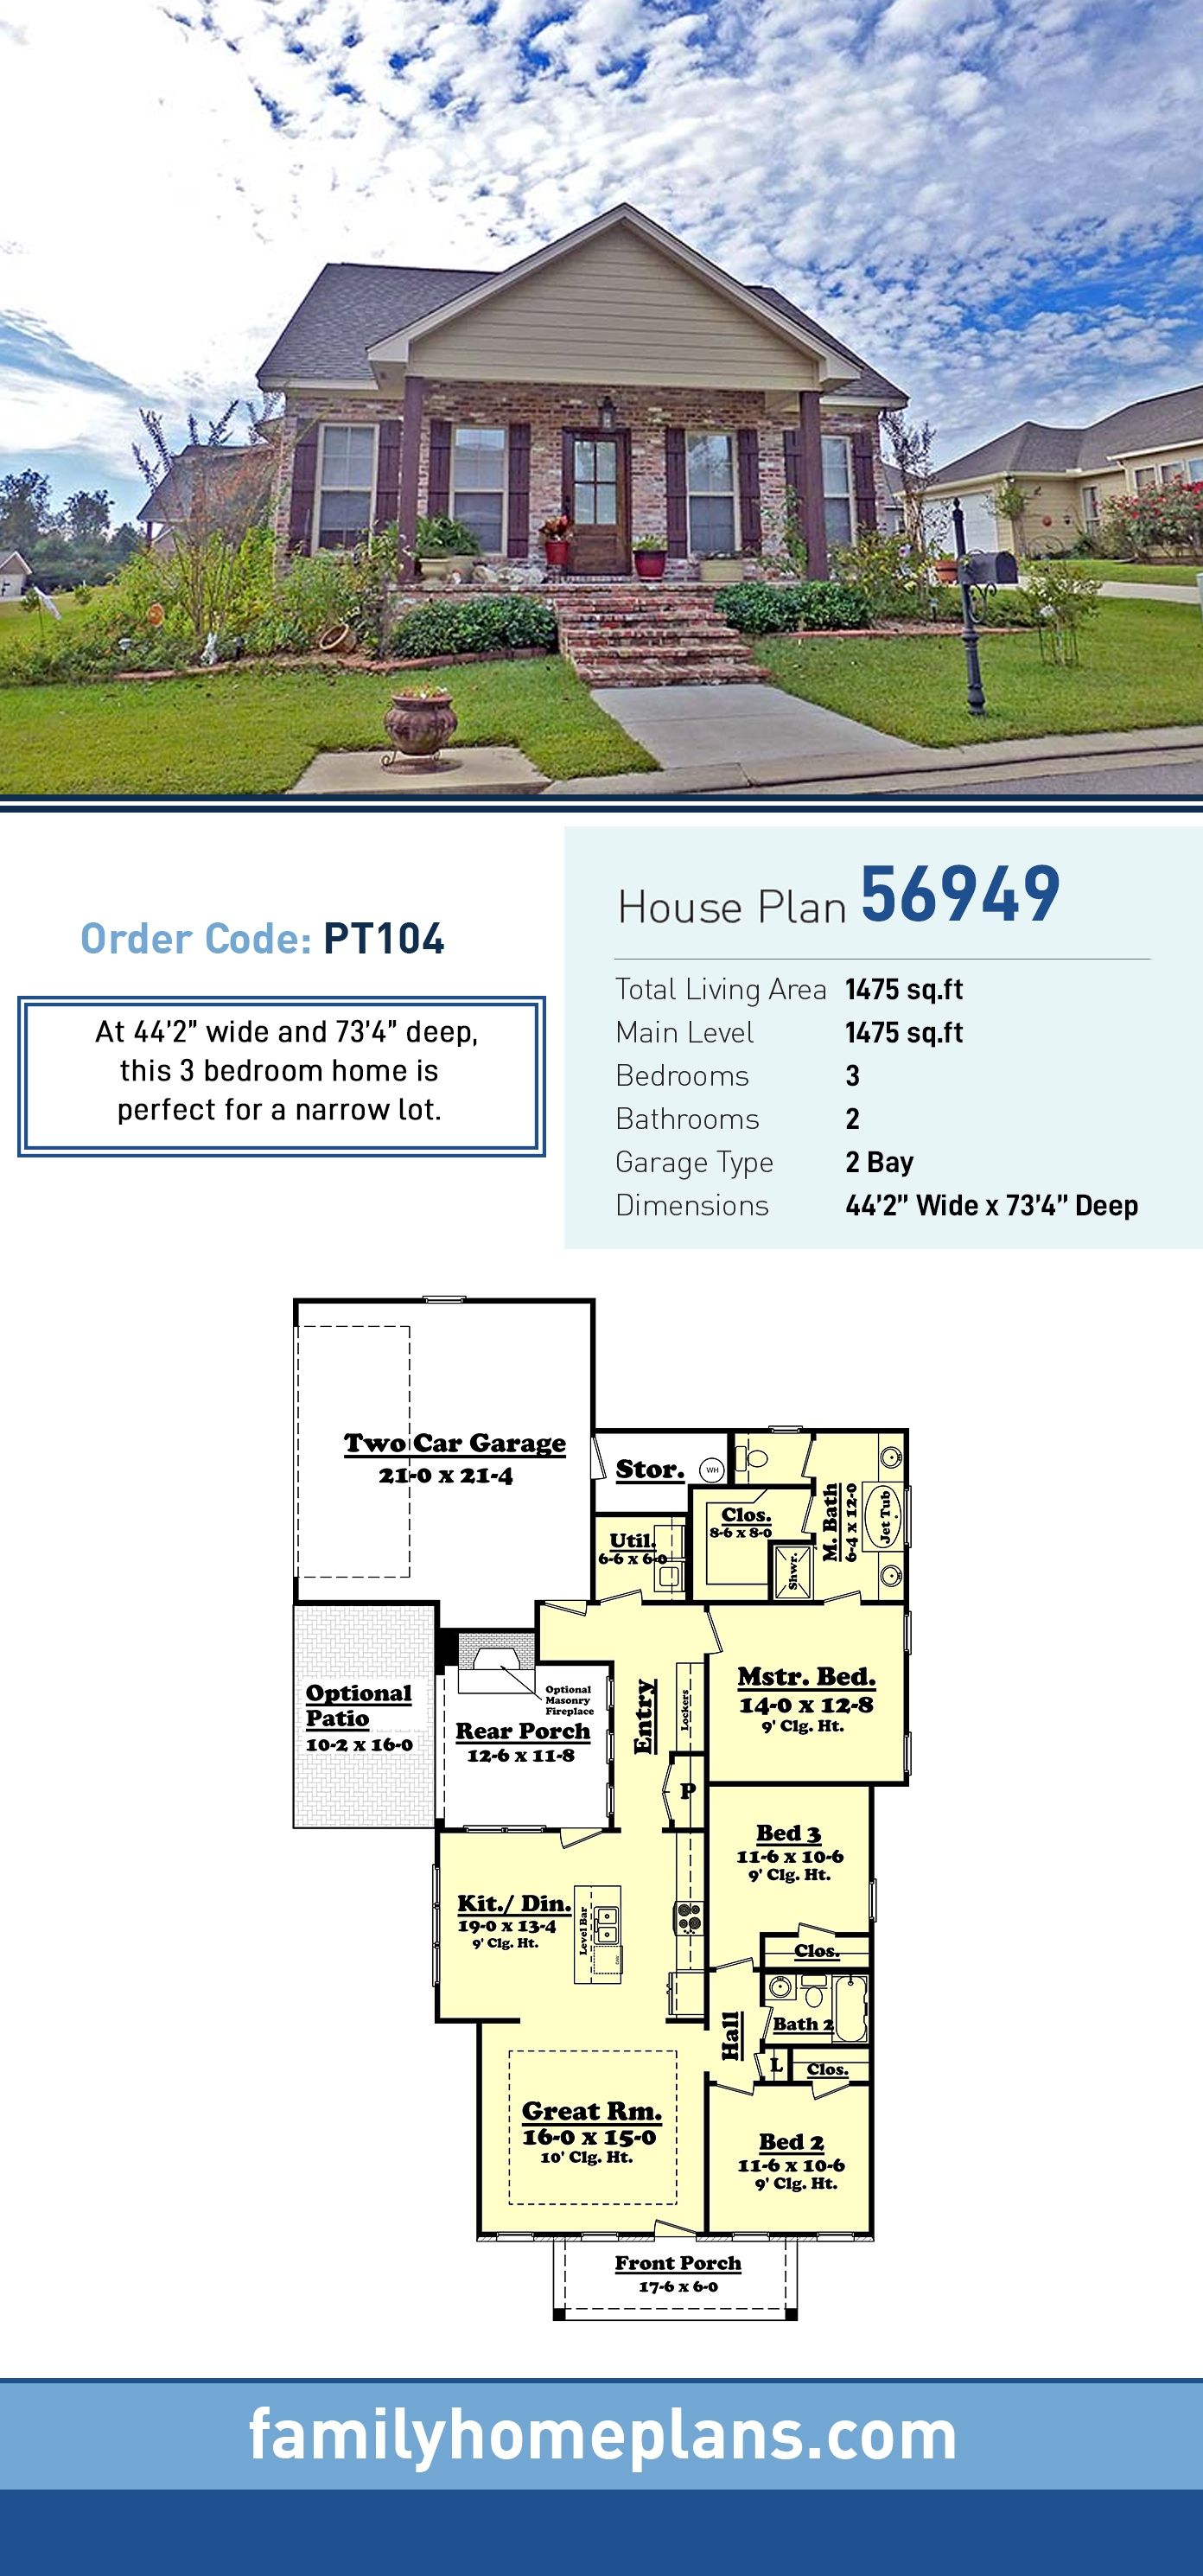 Cottage, Country, Ranch, Traditional House Plan 56949 with 3 Beds, 2 Baths, 2 Car Garage